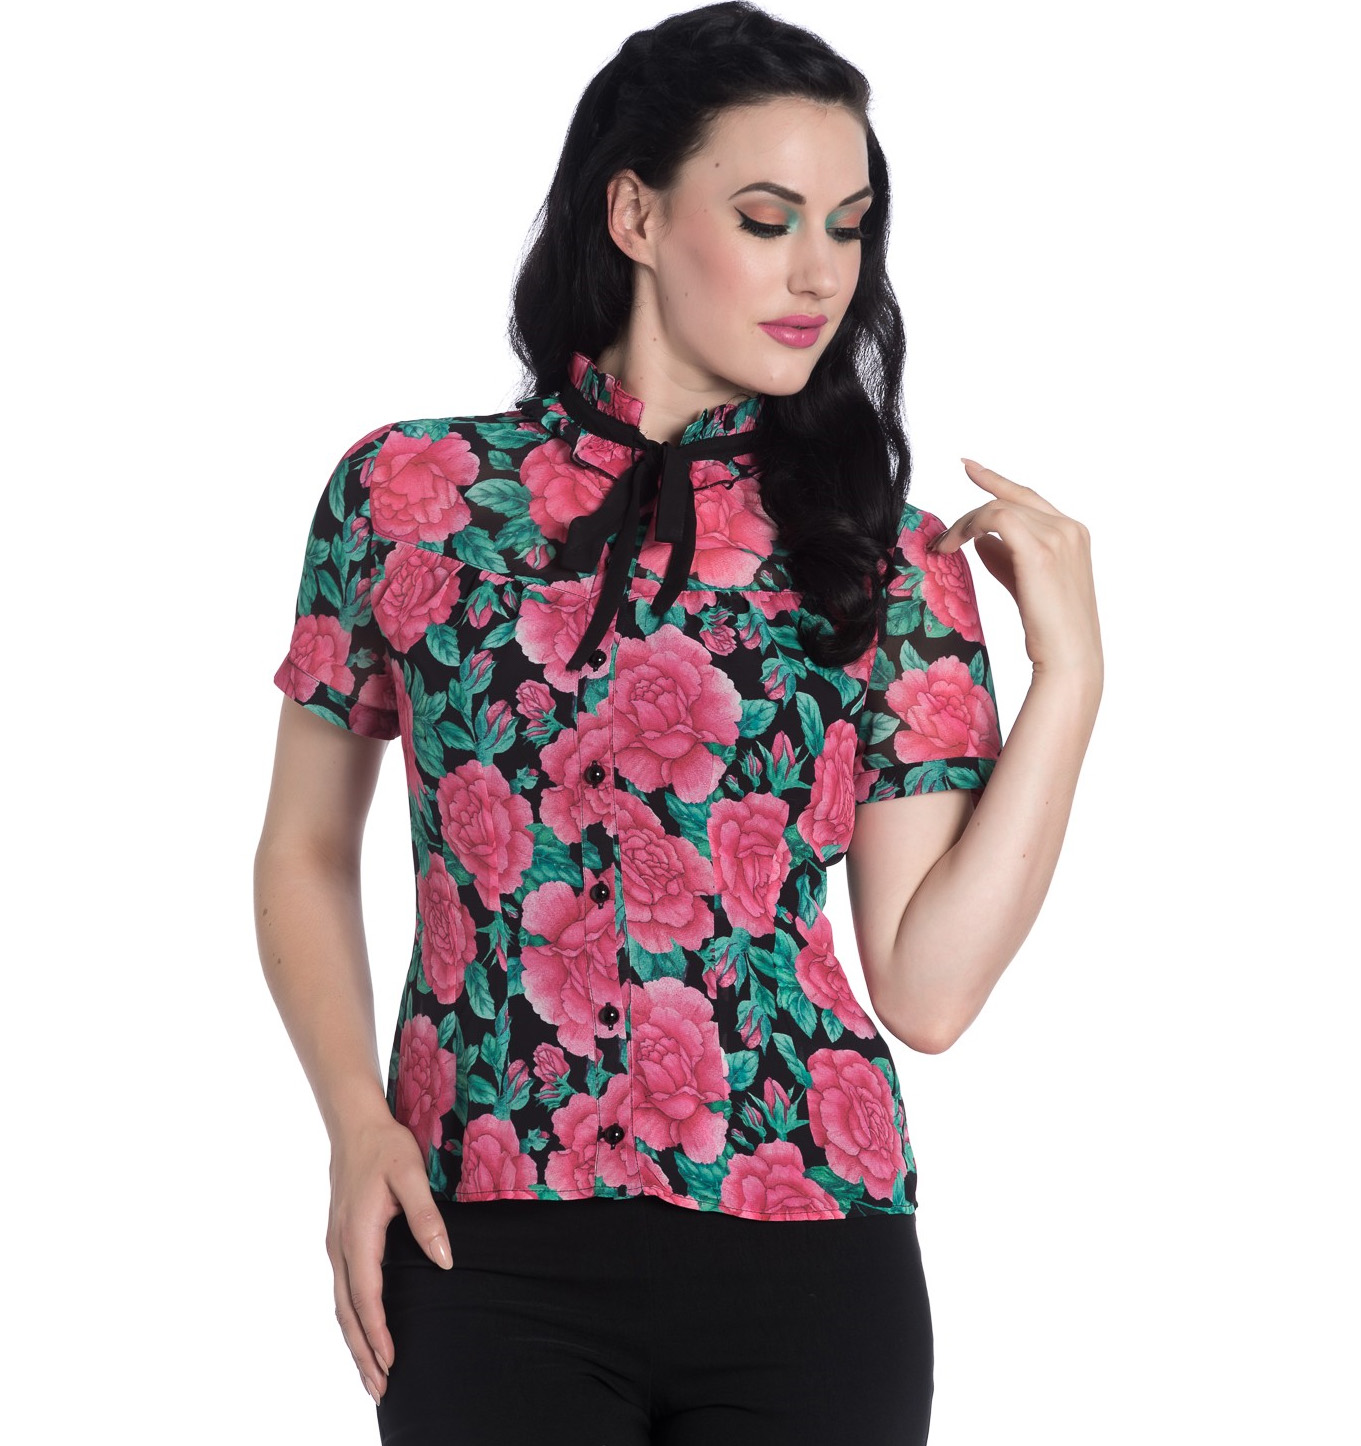 Hell-Bunny-Shirt-Top-Flowers-Roses-EDEN-ROSE-Black-Pink-Blouse-All-Sizes thumbnail 11